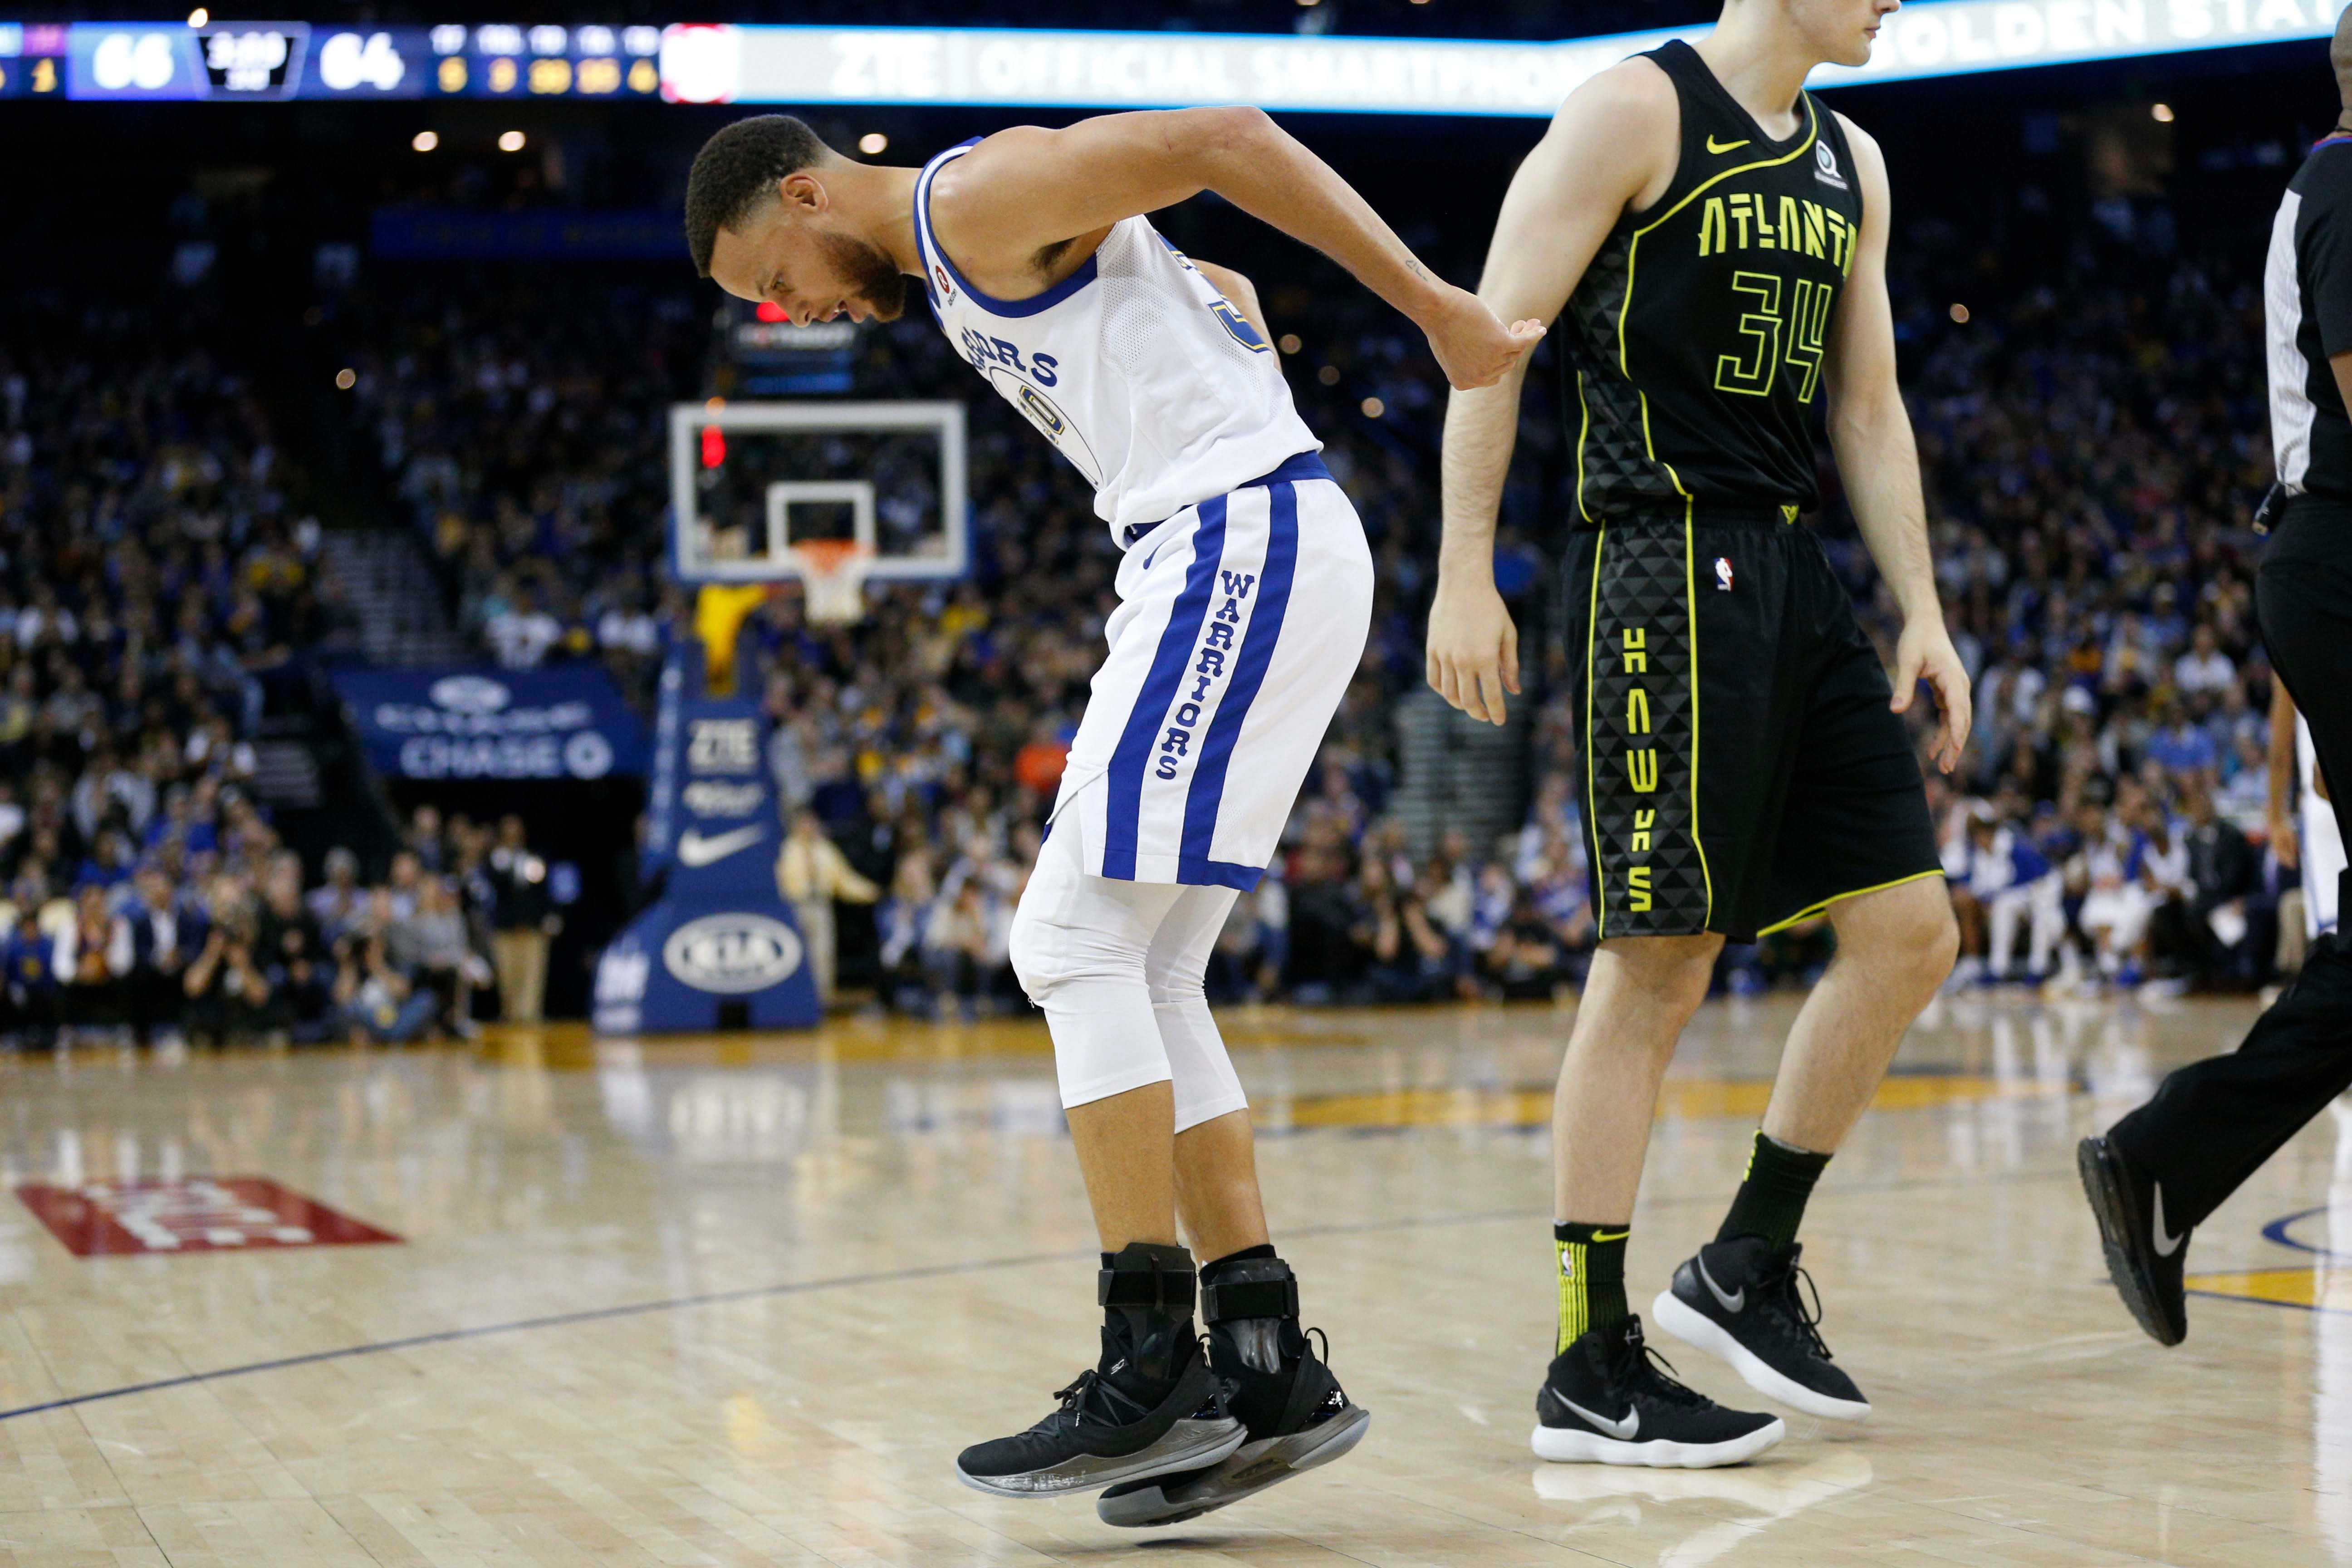 Warriors' Steph Curry suffers Grade 2 MCL sprain, will be re-evaluated in 3 weeks